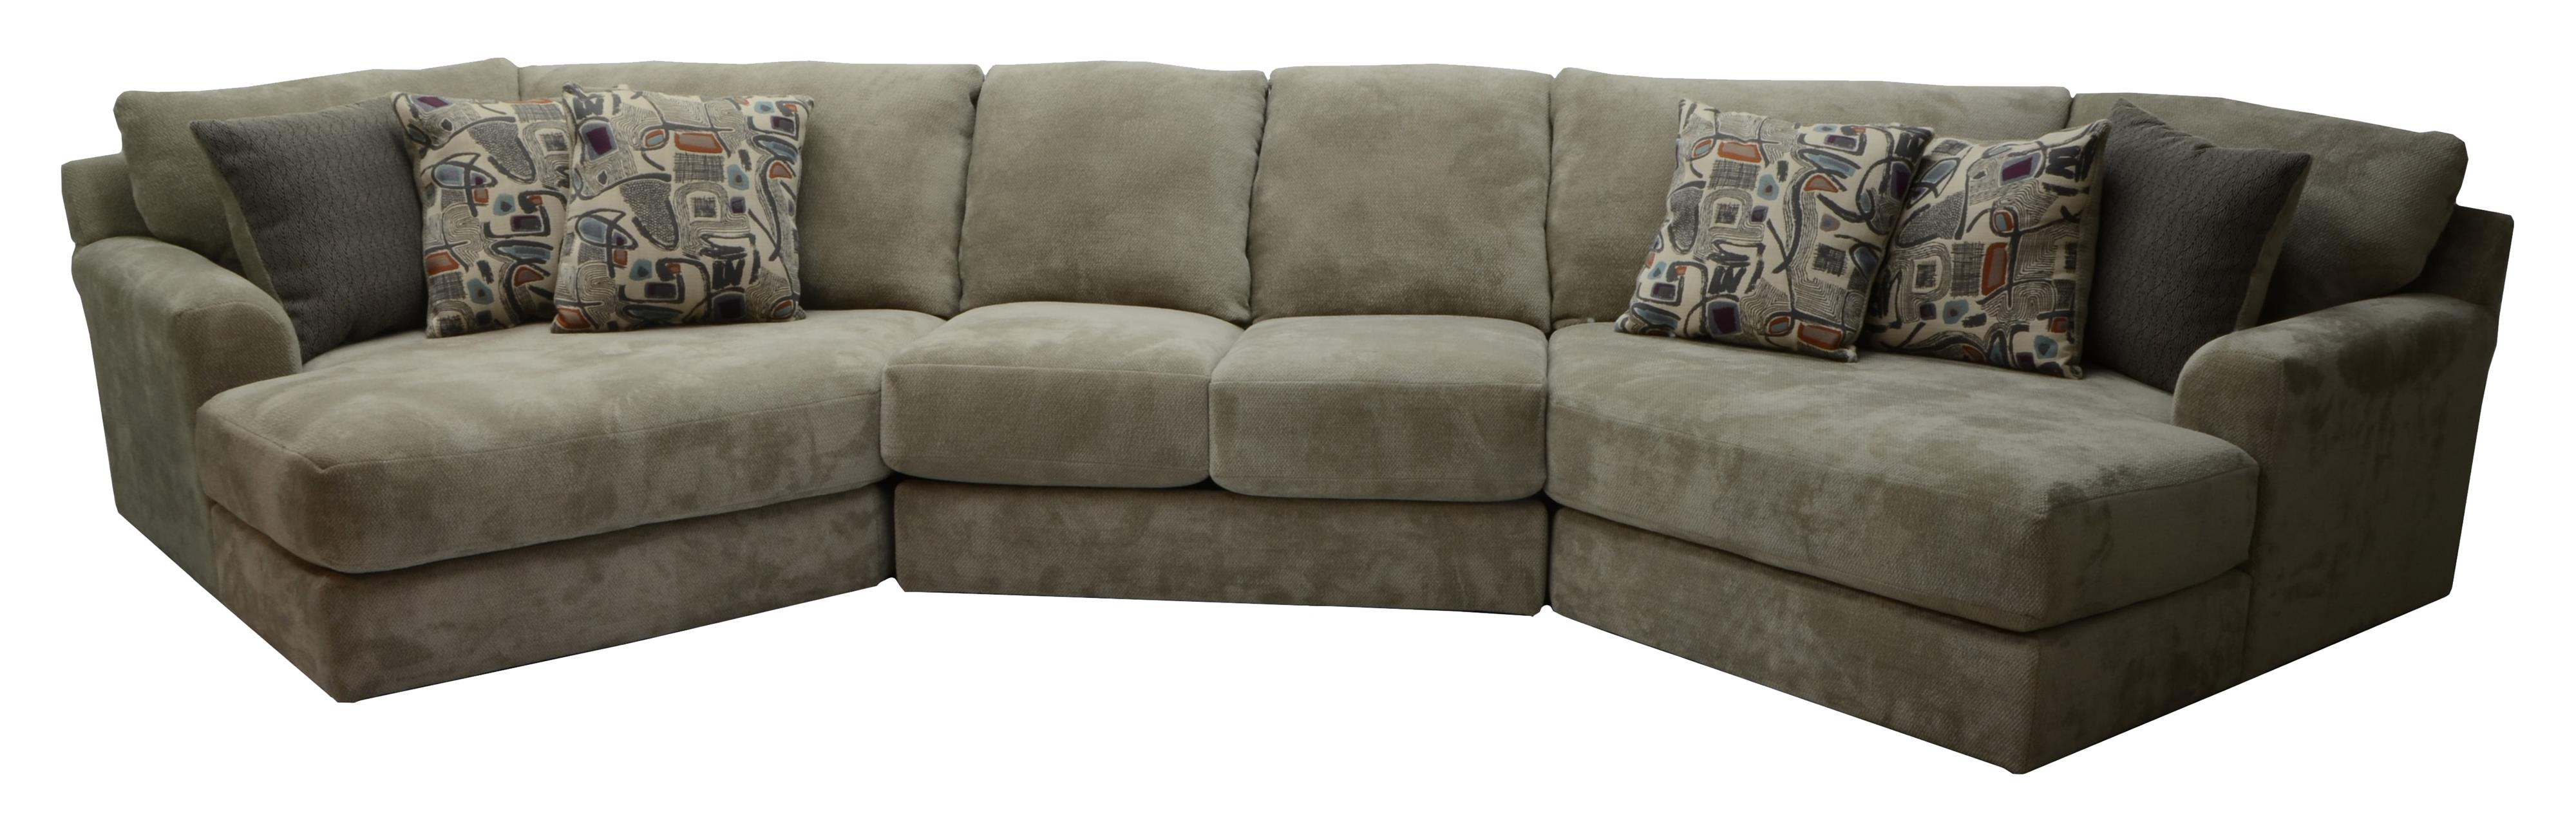 Sectional Sofas With Wedge Corner #EY16 – Roccommunity